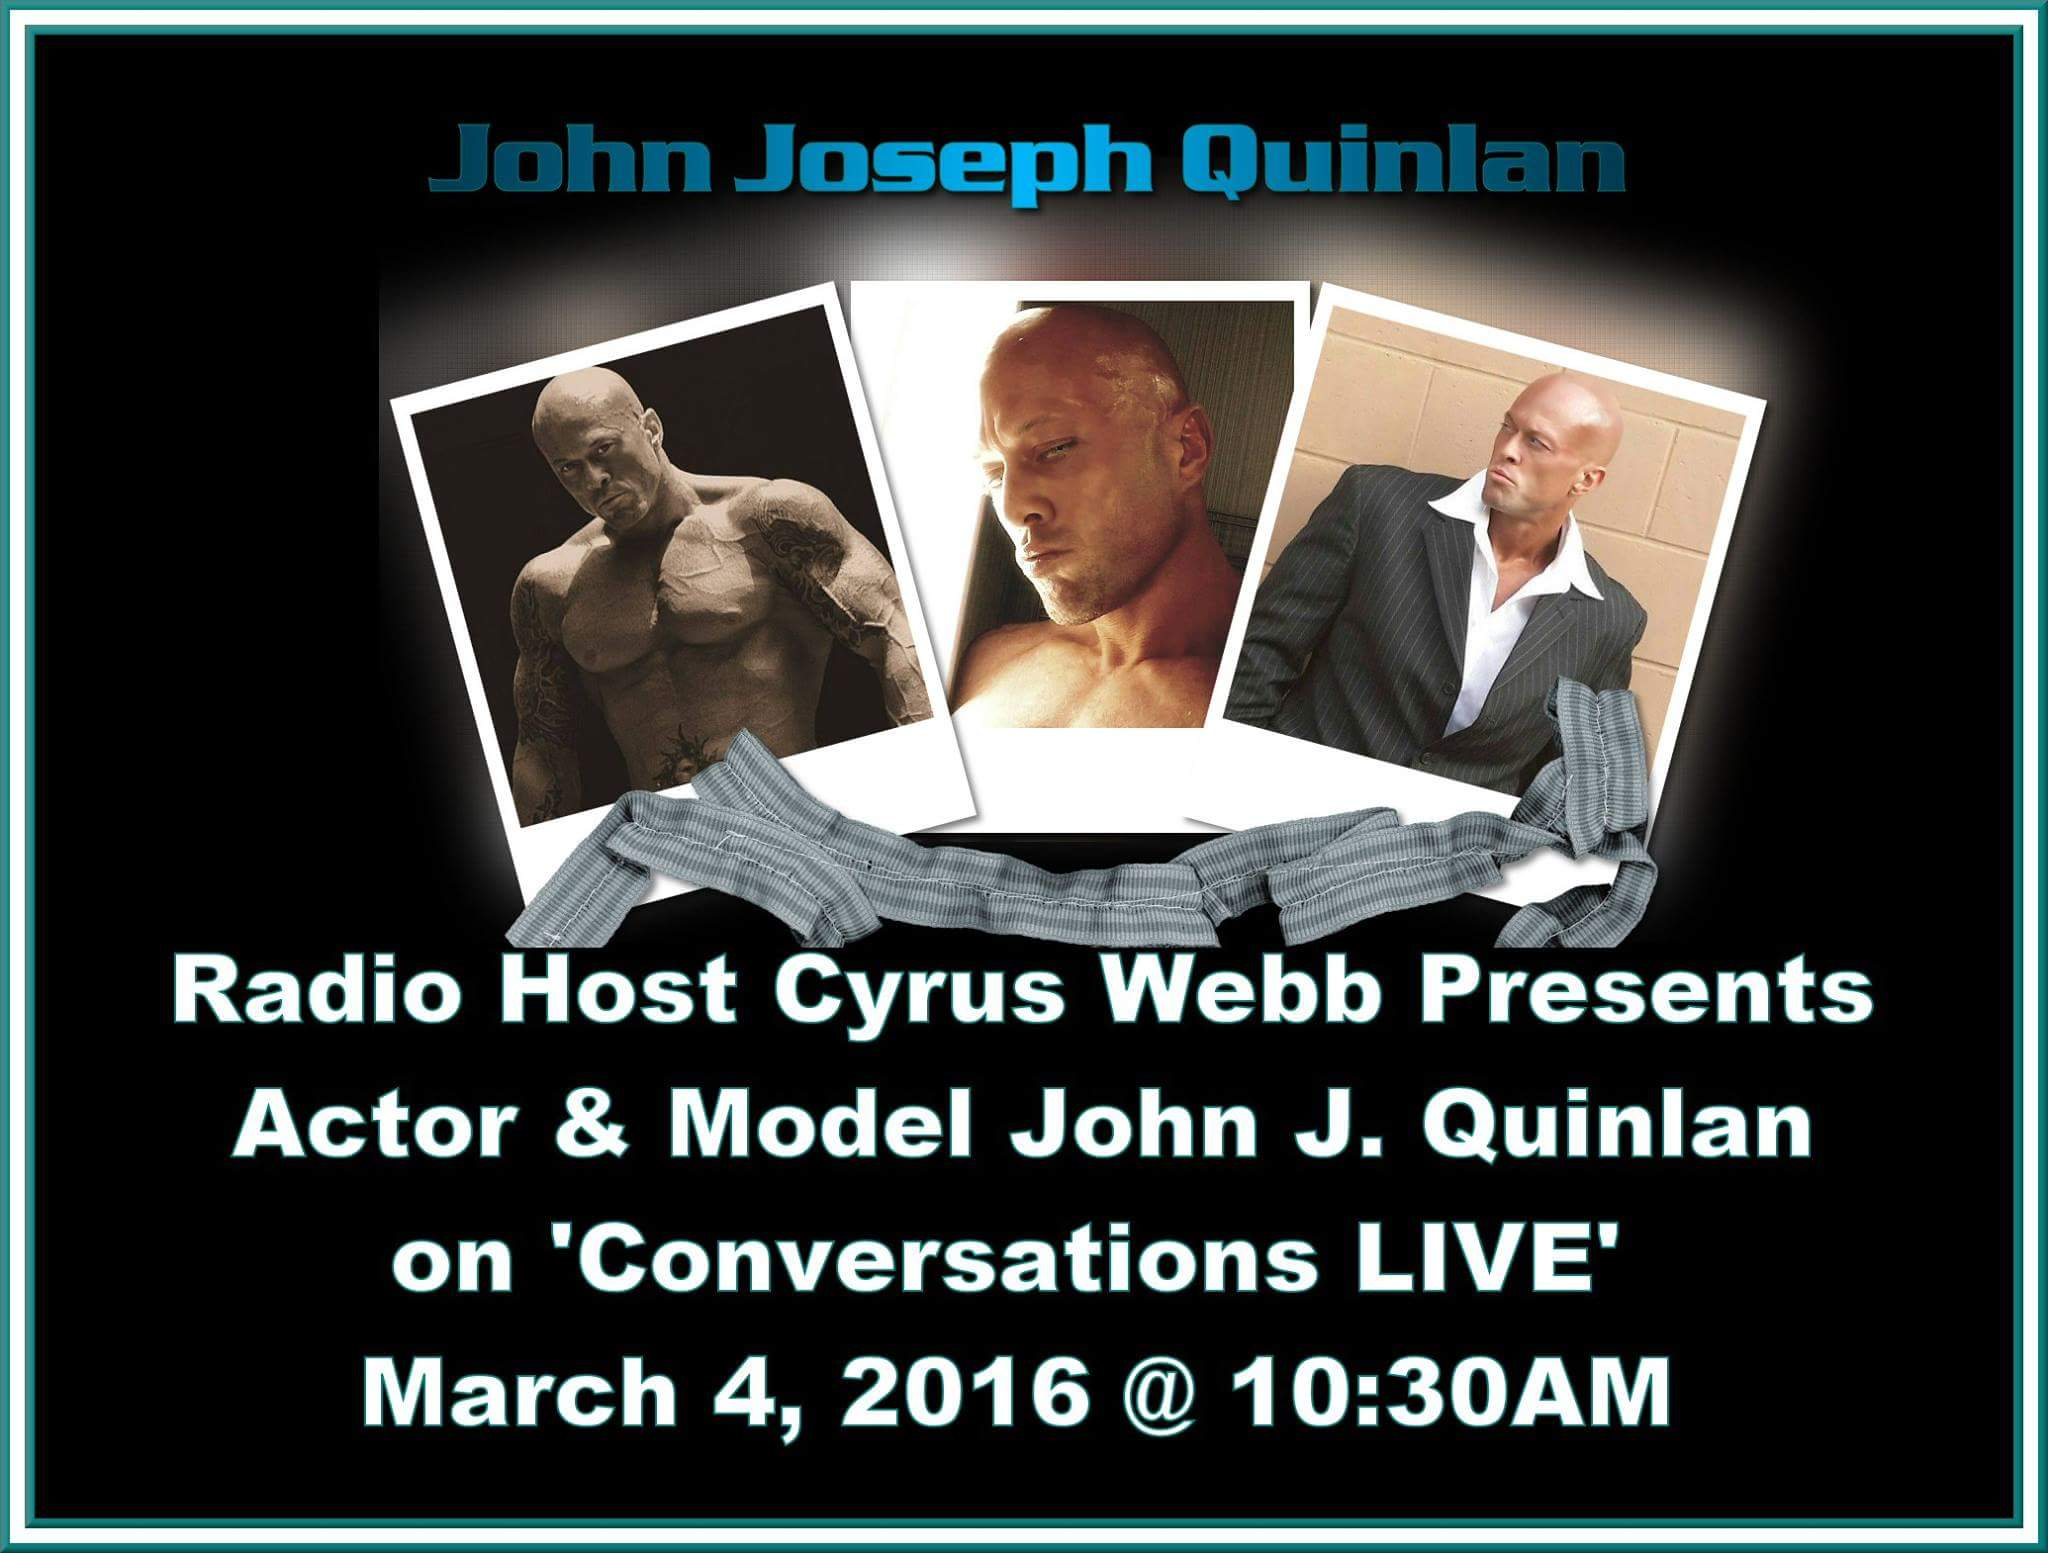 Cyrus Webb Radio Interview with Physique Model Actor John Joseph Quinlan #JohnQuinlan